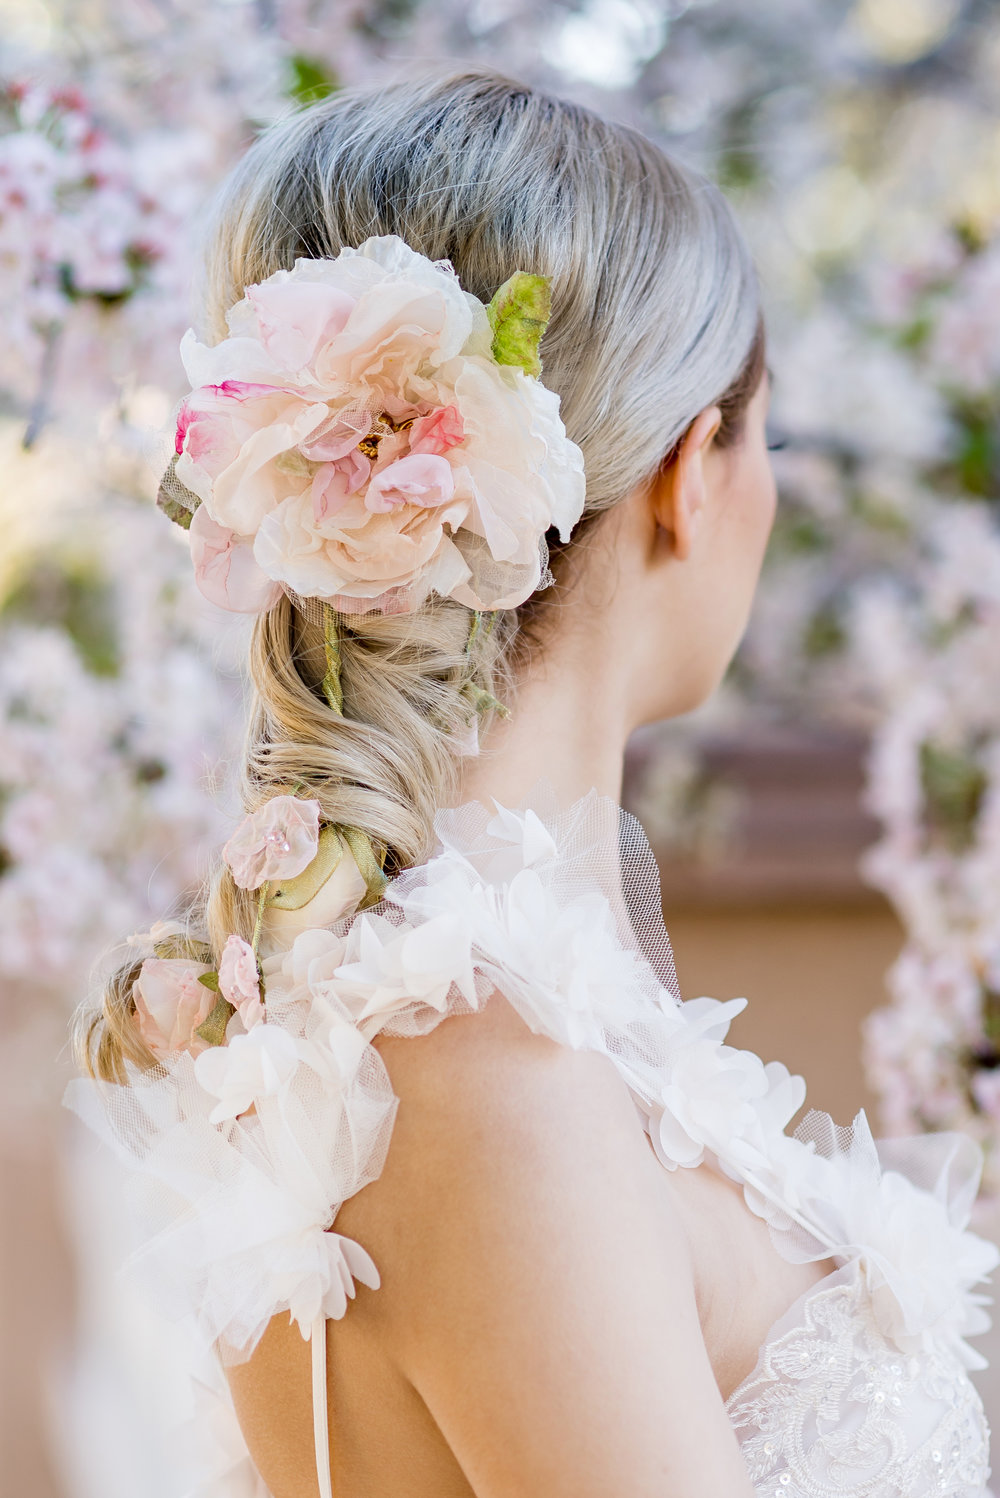 Maura Jane Photography. Hair Piece: Fiori Couture. Gown: Teresa Romero. North Valley, New Mexico.